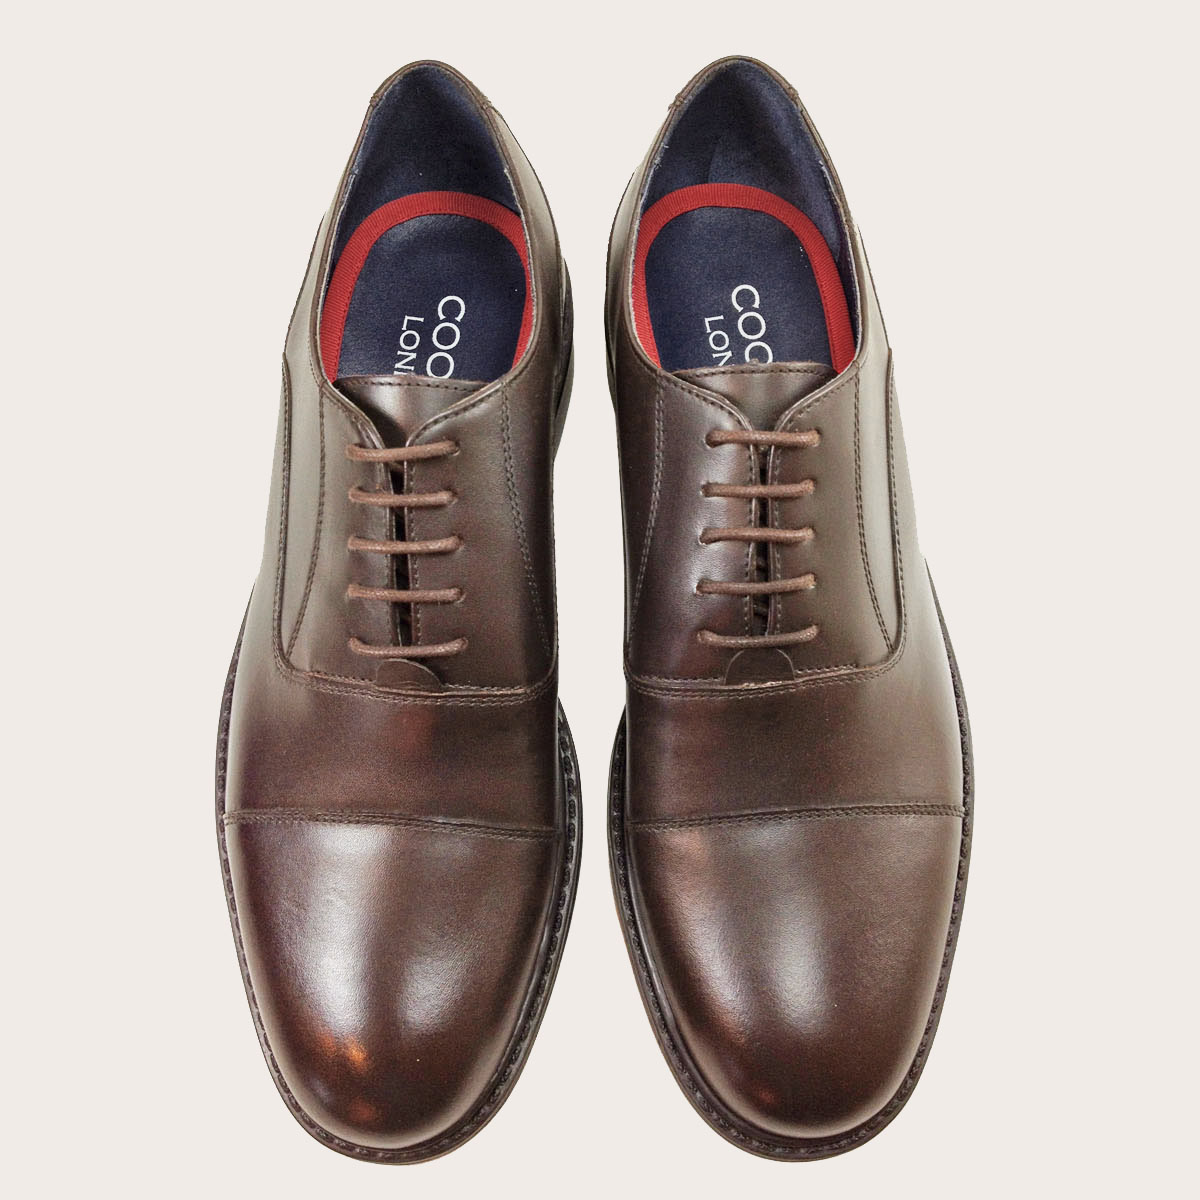 4 pairs of shoes every man must own. ---> FOLLOW US ON PINTEREST